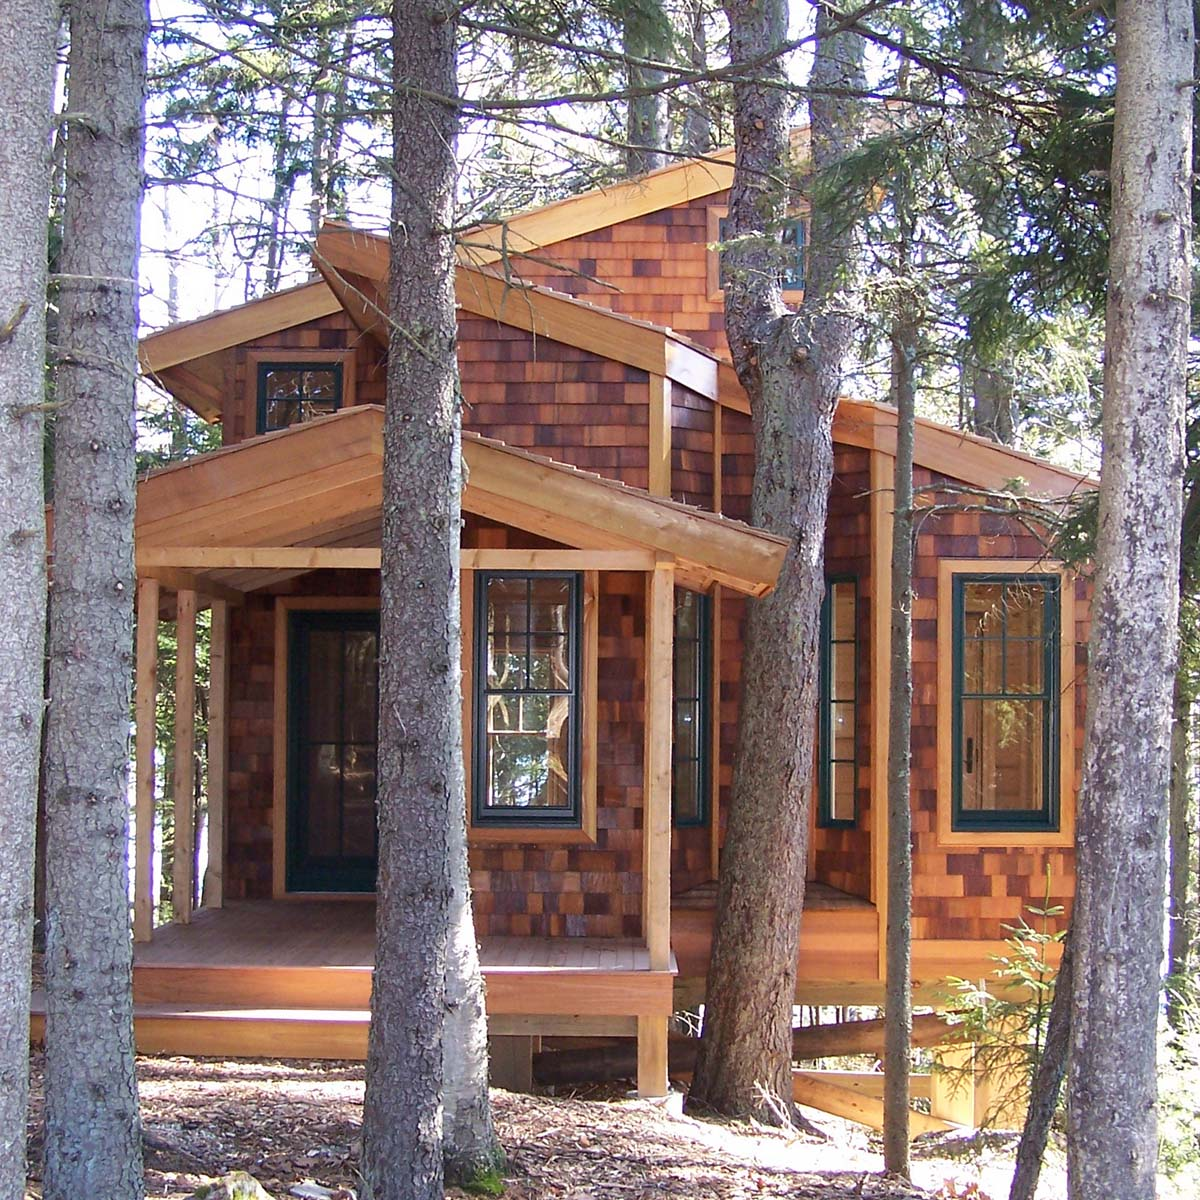 Gallery a tiny house in the trees david matero small for Small tree house